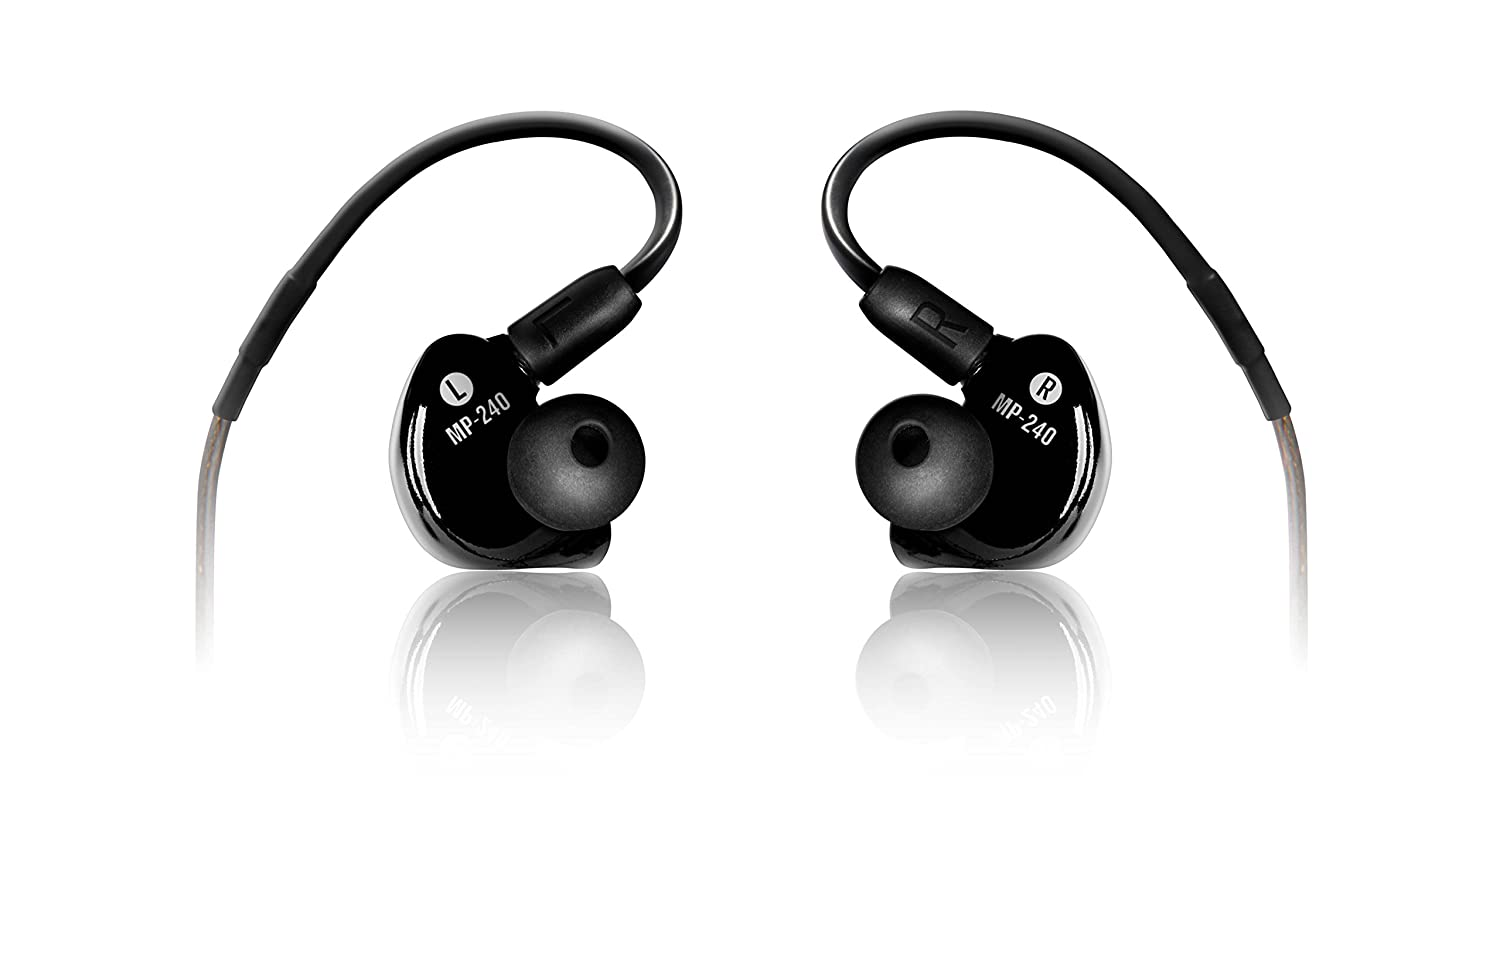 Mackie in-Ear Headphones and Monitors, Dual Hybrid Driver (MP-240) Loud Technologies Inc.